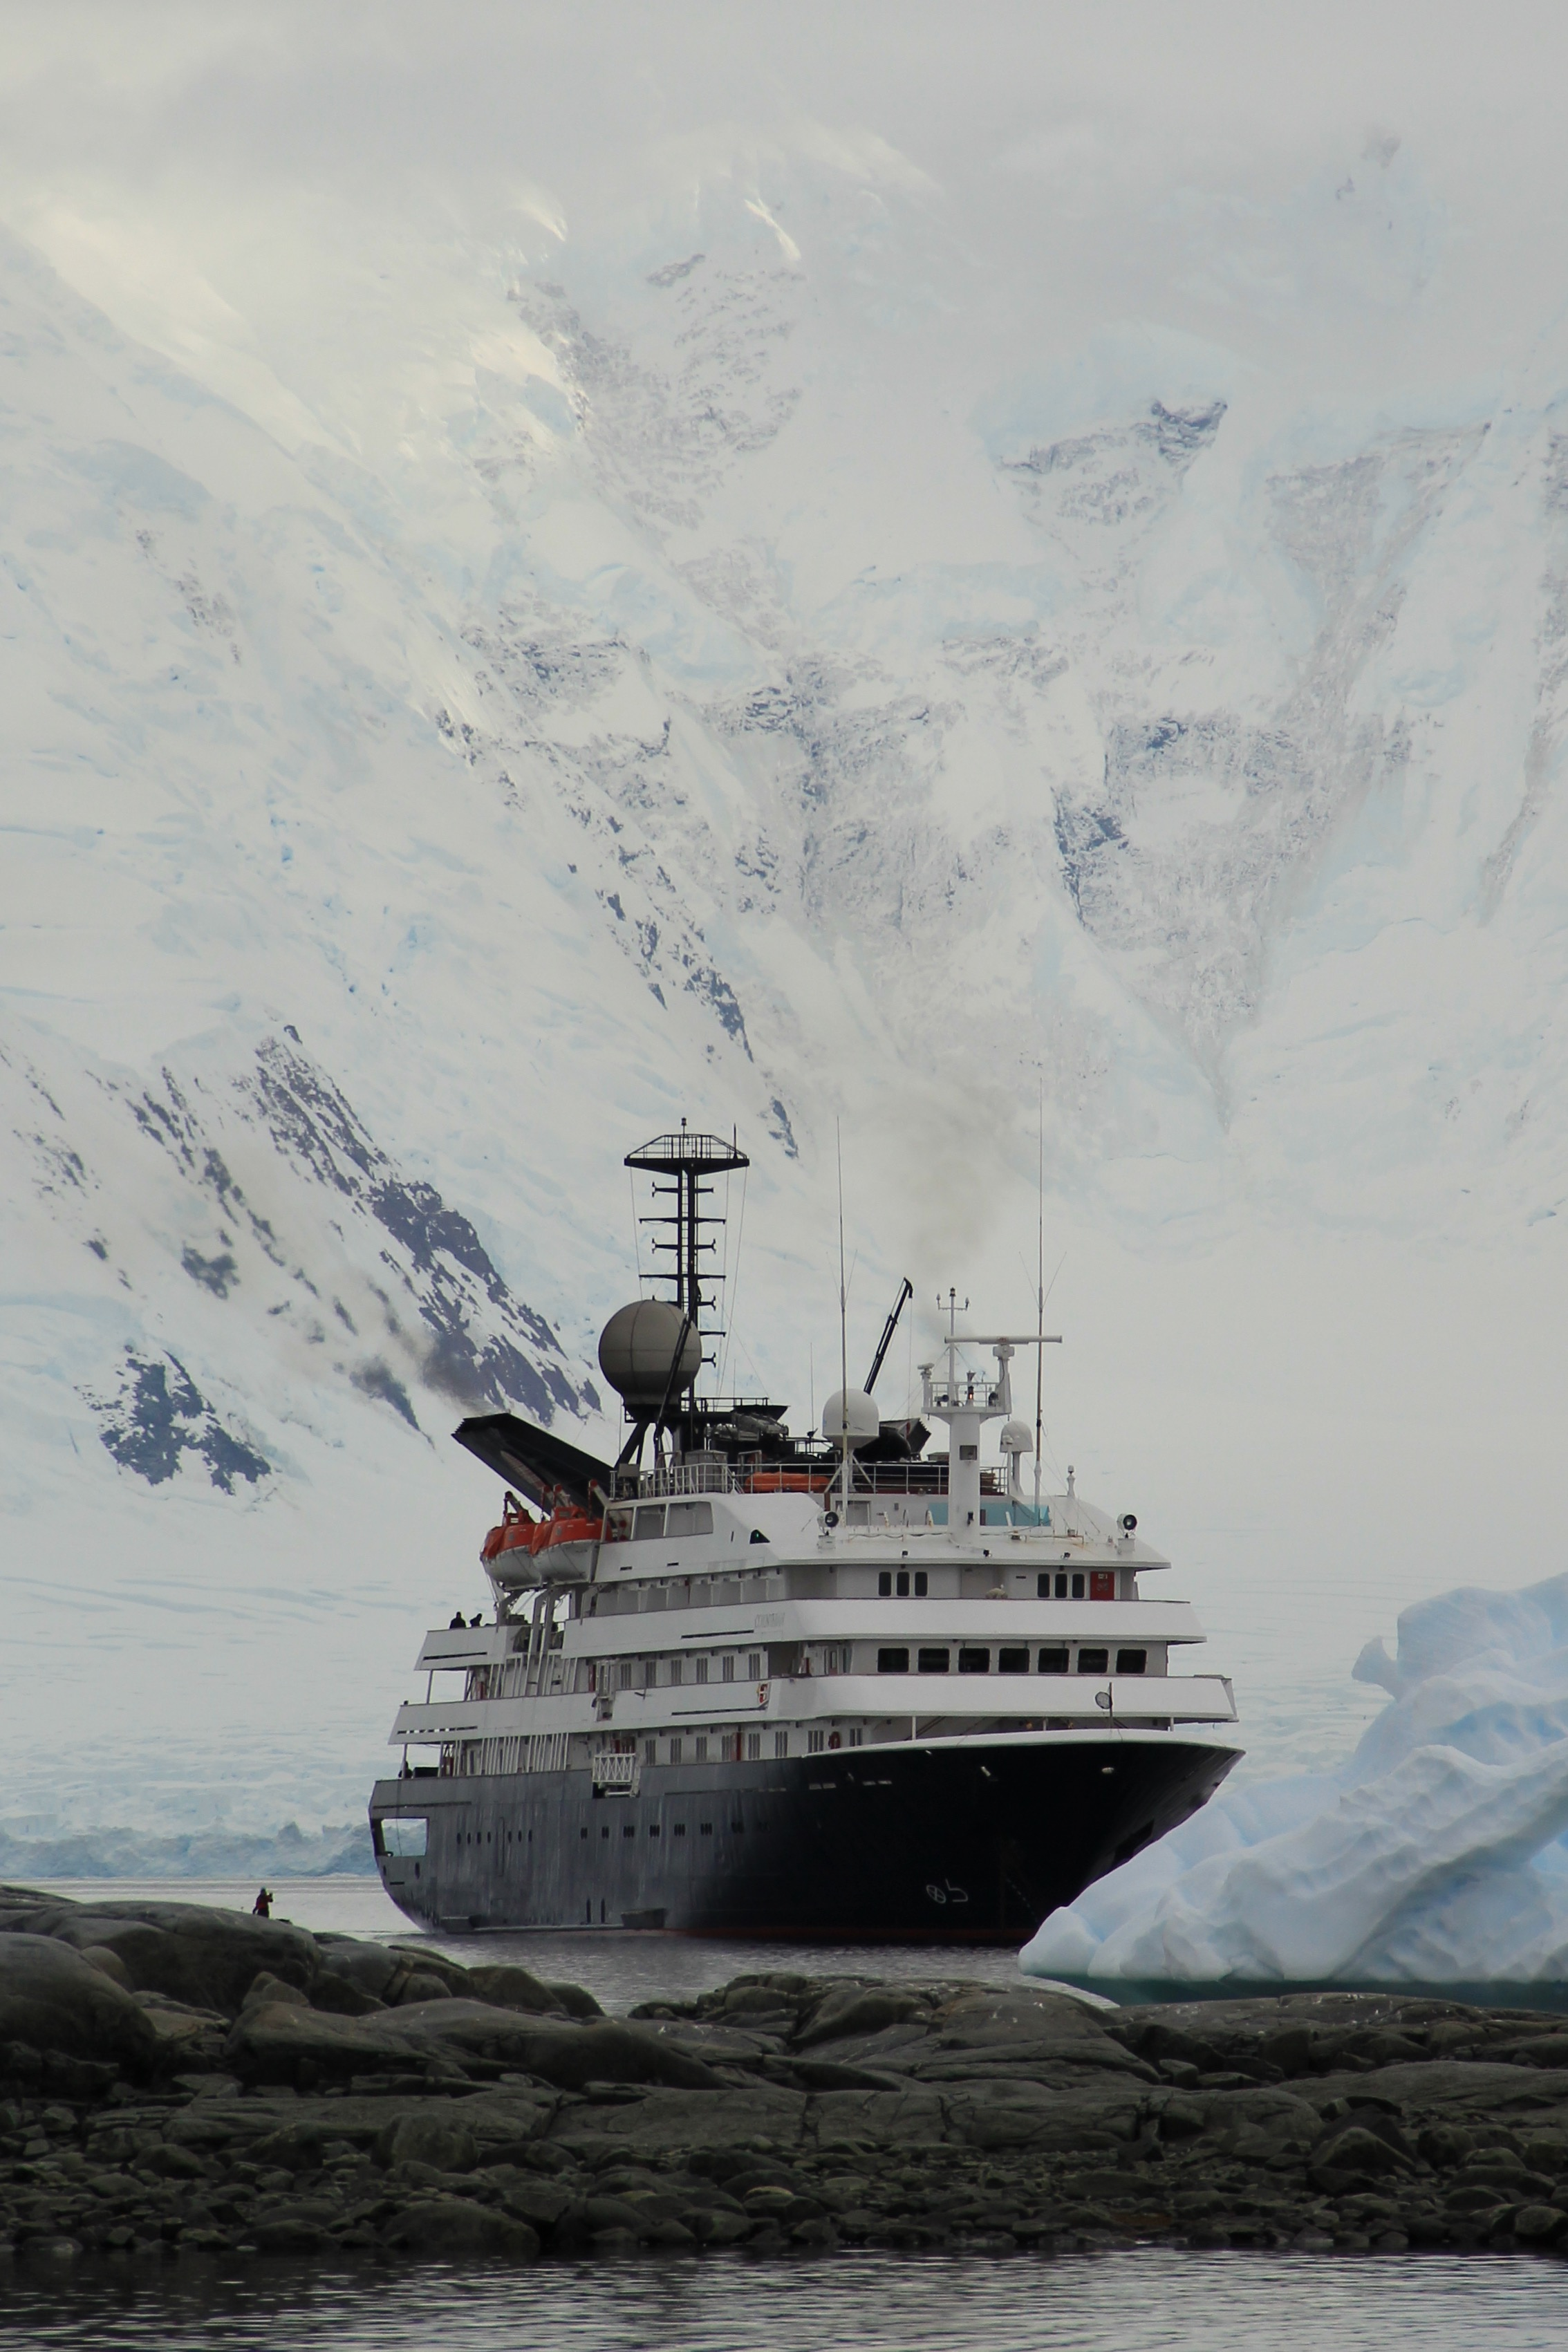 Our ship, the Corinthian. It takes 48 hours to sail from Tierra del Fuego, Argentina, to the northern edge of the Antarctic Peninsula.